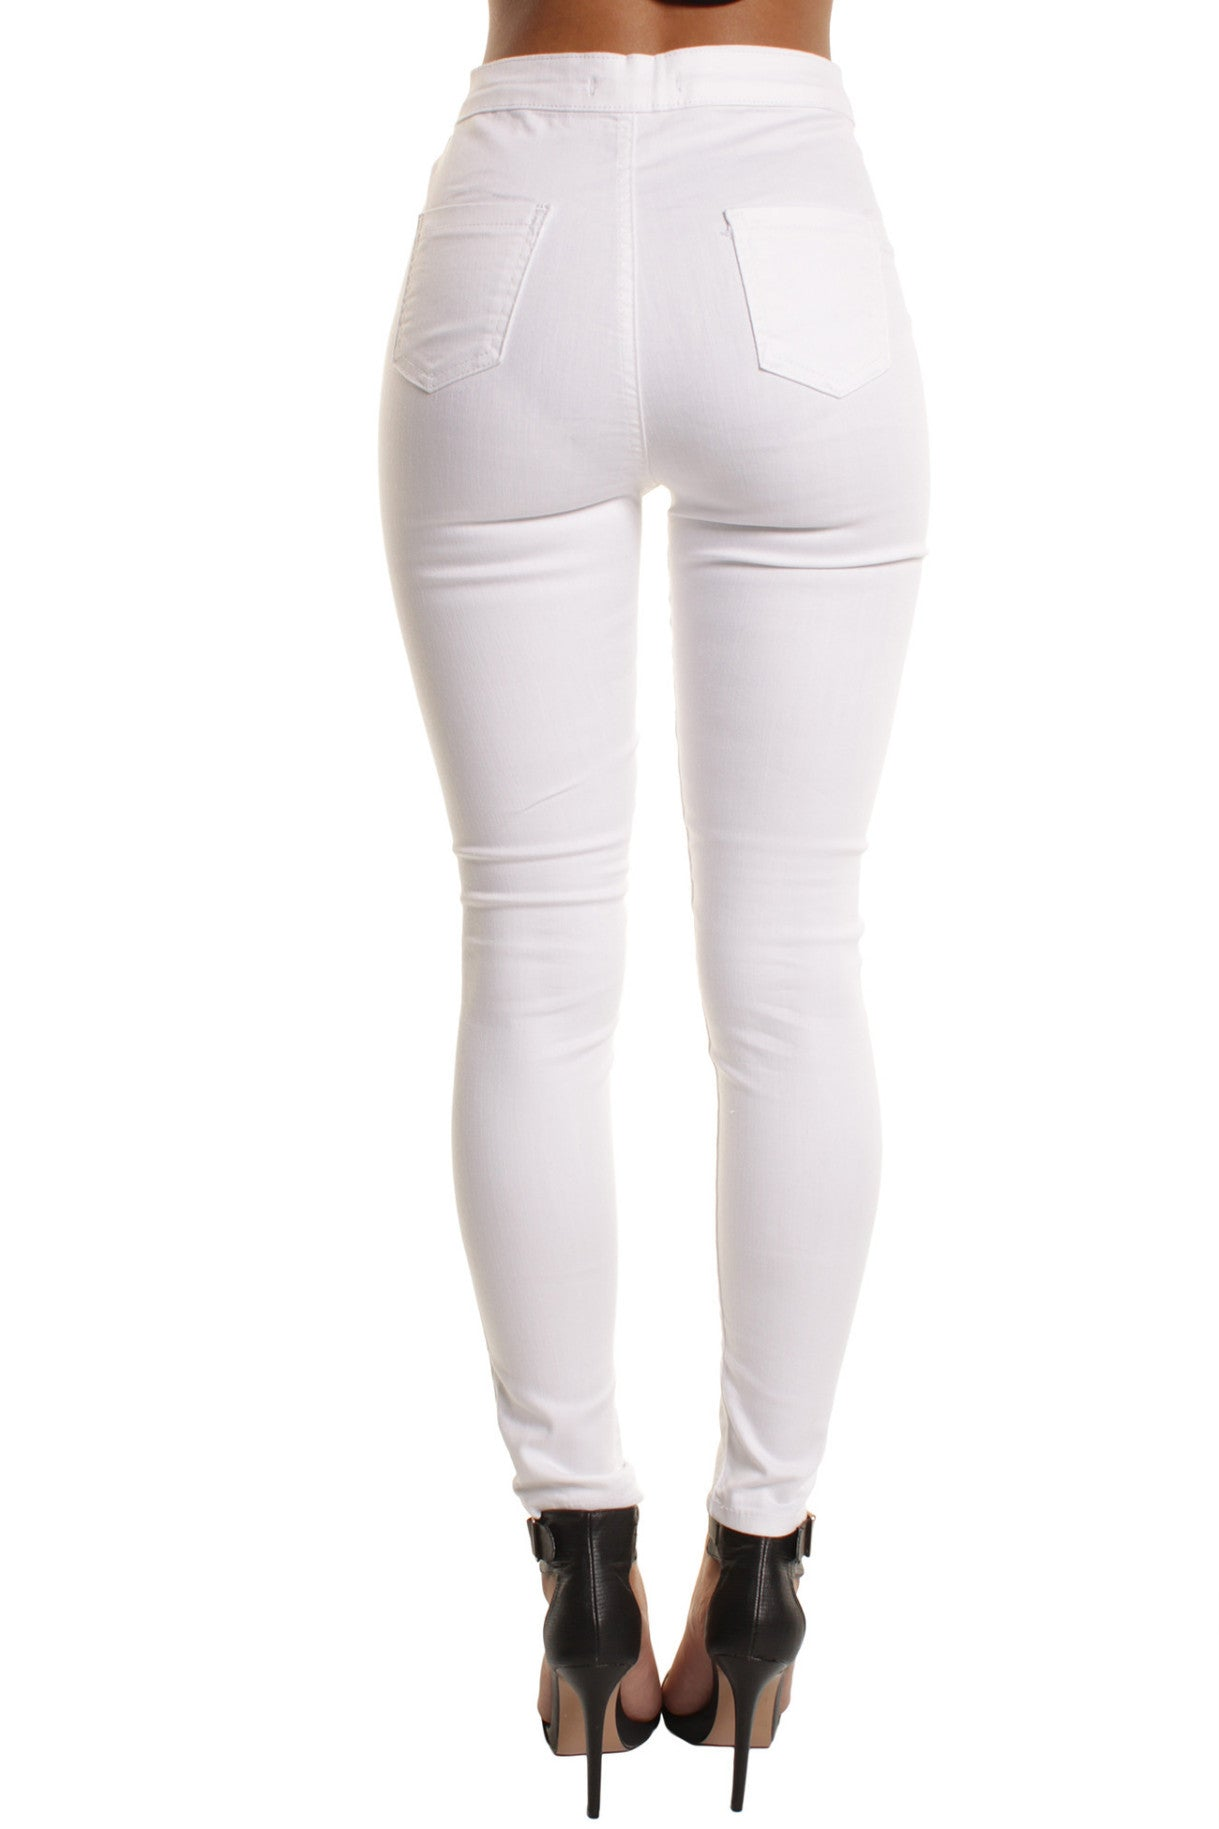 White High Waisted Ripped Knee Skinny Jeans